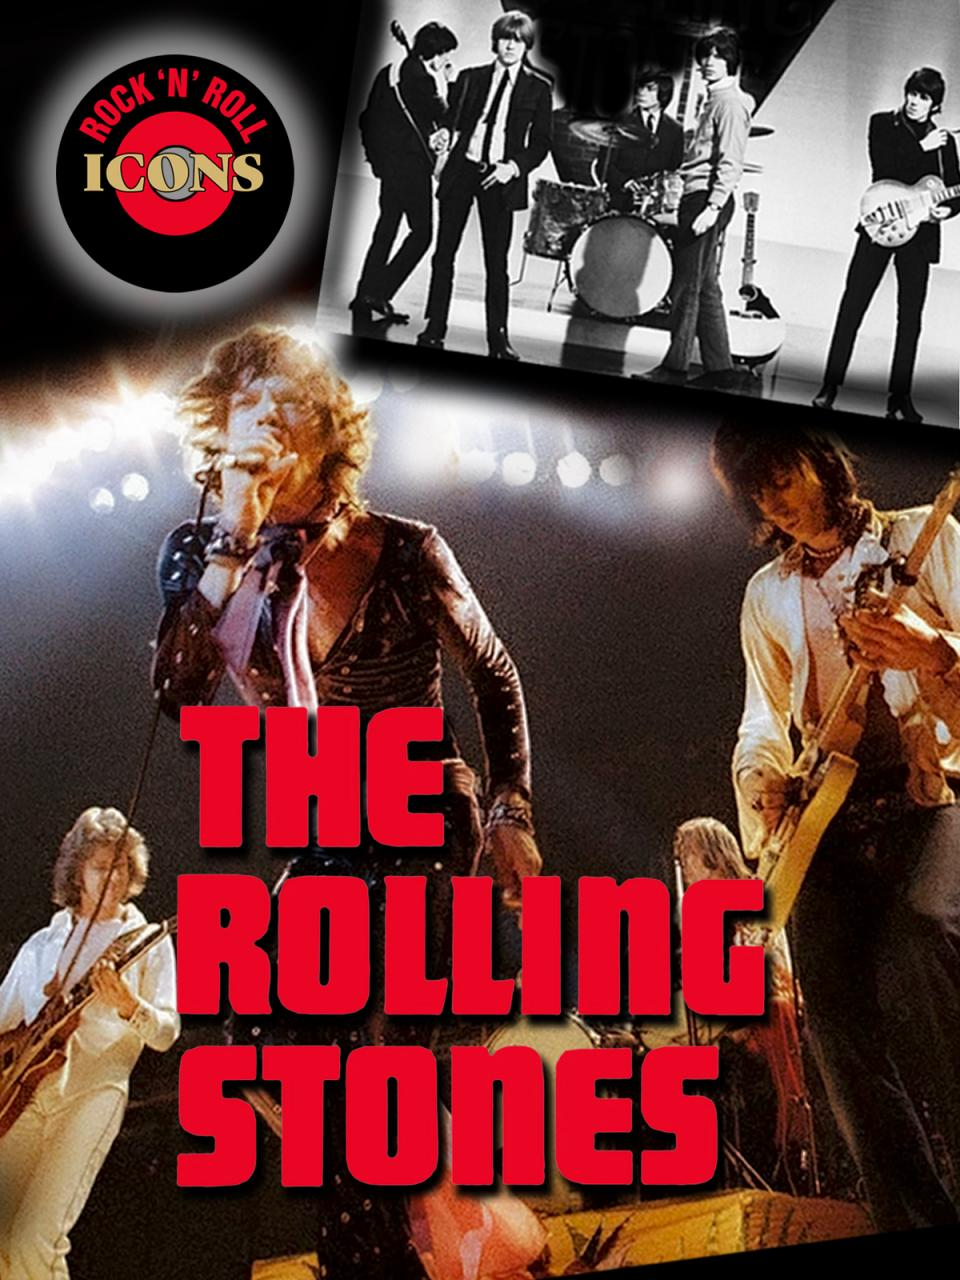 Rock 'n Roll Icons: The Rolling Stones